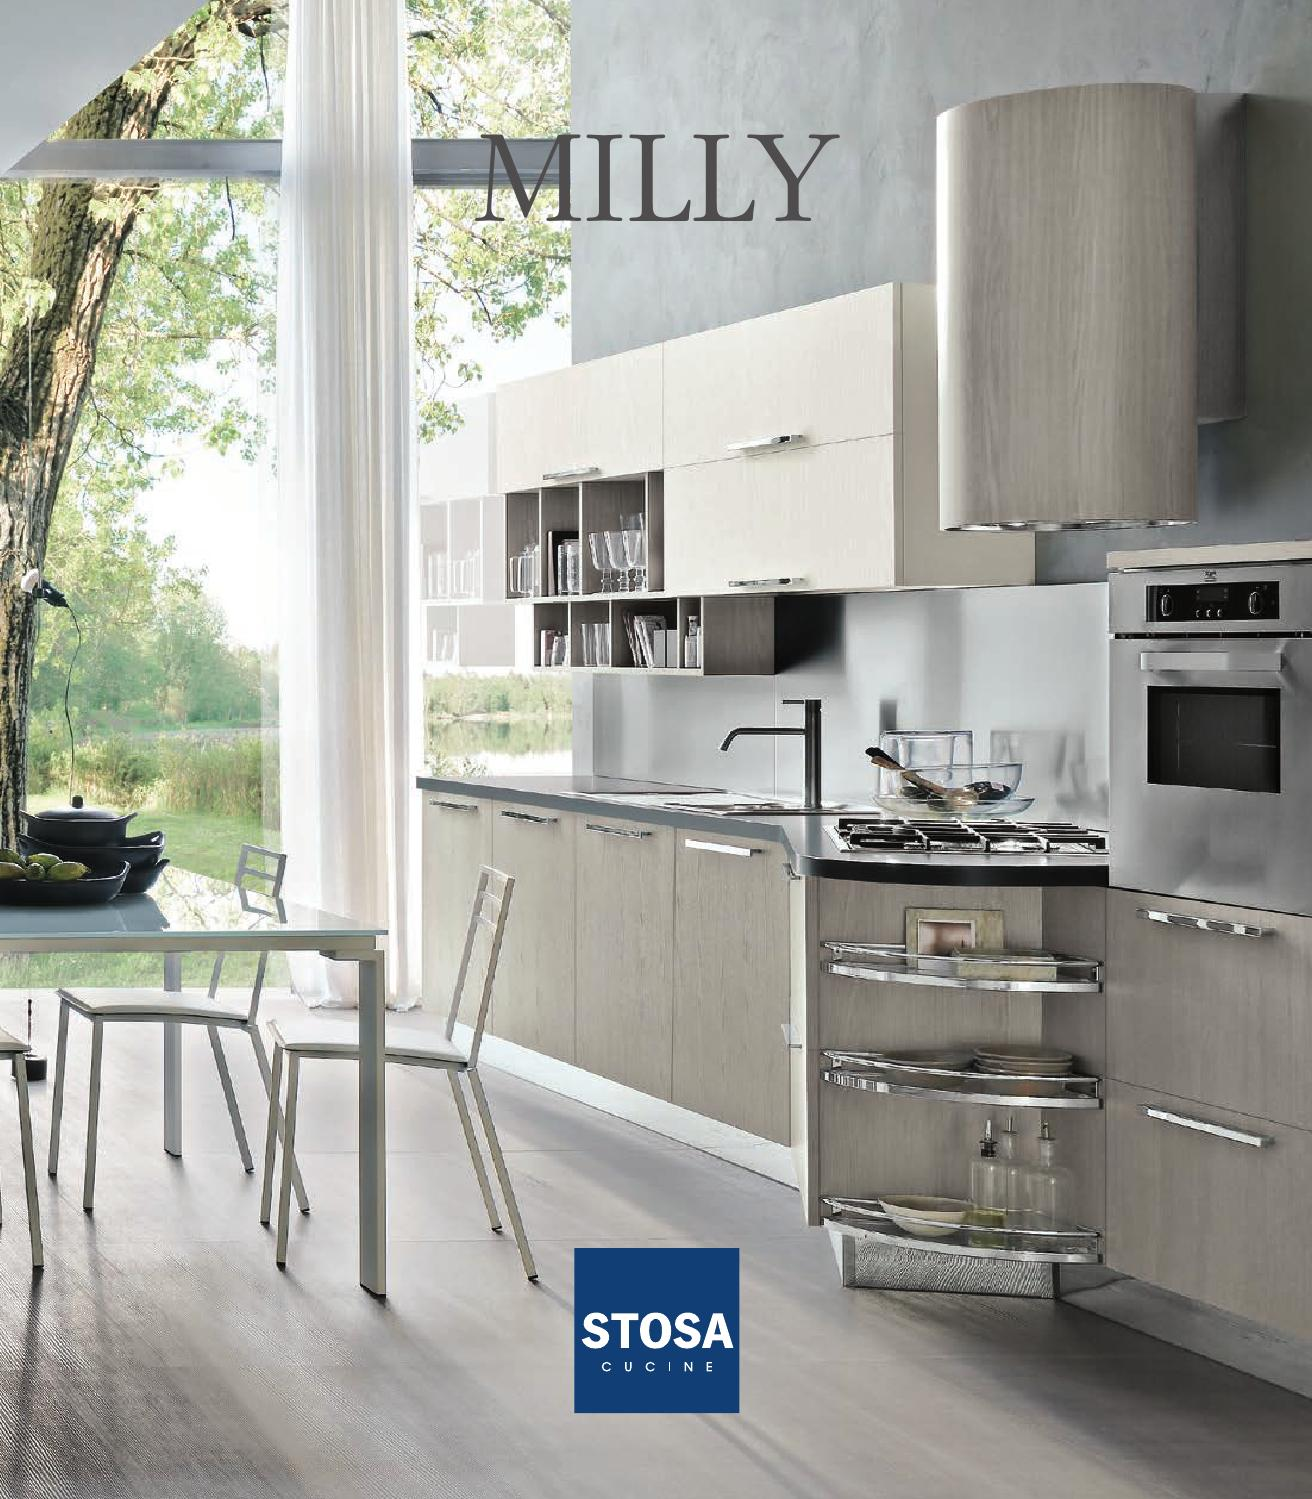 Cucina Ad Angolo Stosa Catalogo Cucine Moderne Stosa Milly By Stosa Cucine Issuu